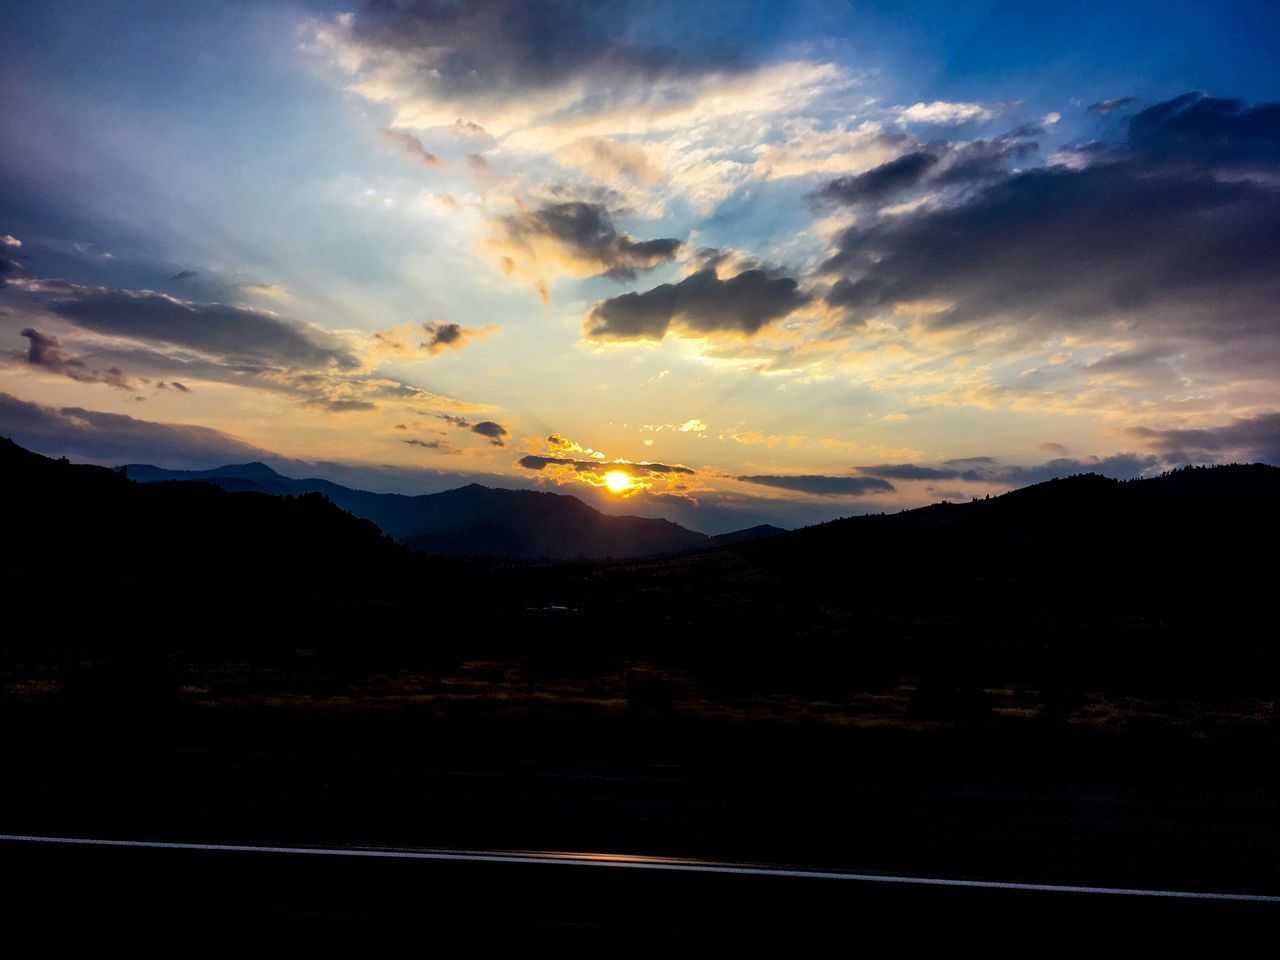 sunset, sky, scenics, nature, tranquility, silhouette, tranquil scene, landscape, beauty in nature, sun, road, no people, cloud - sky, mountain, transportation, outdoors, day